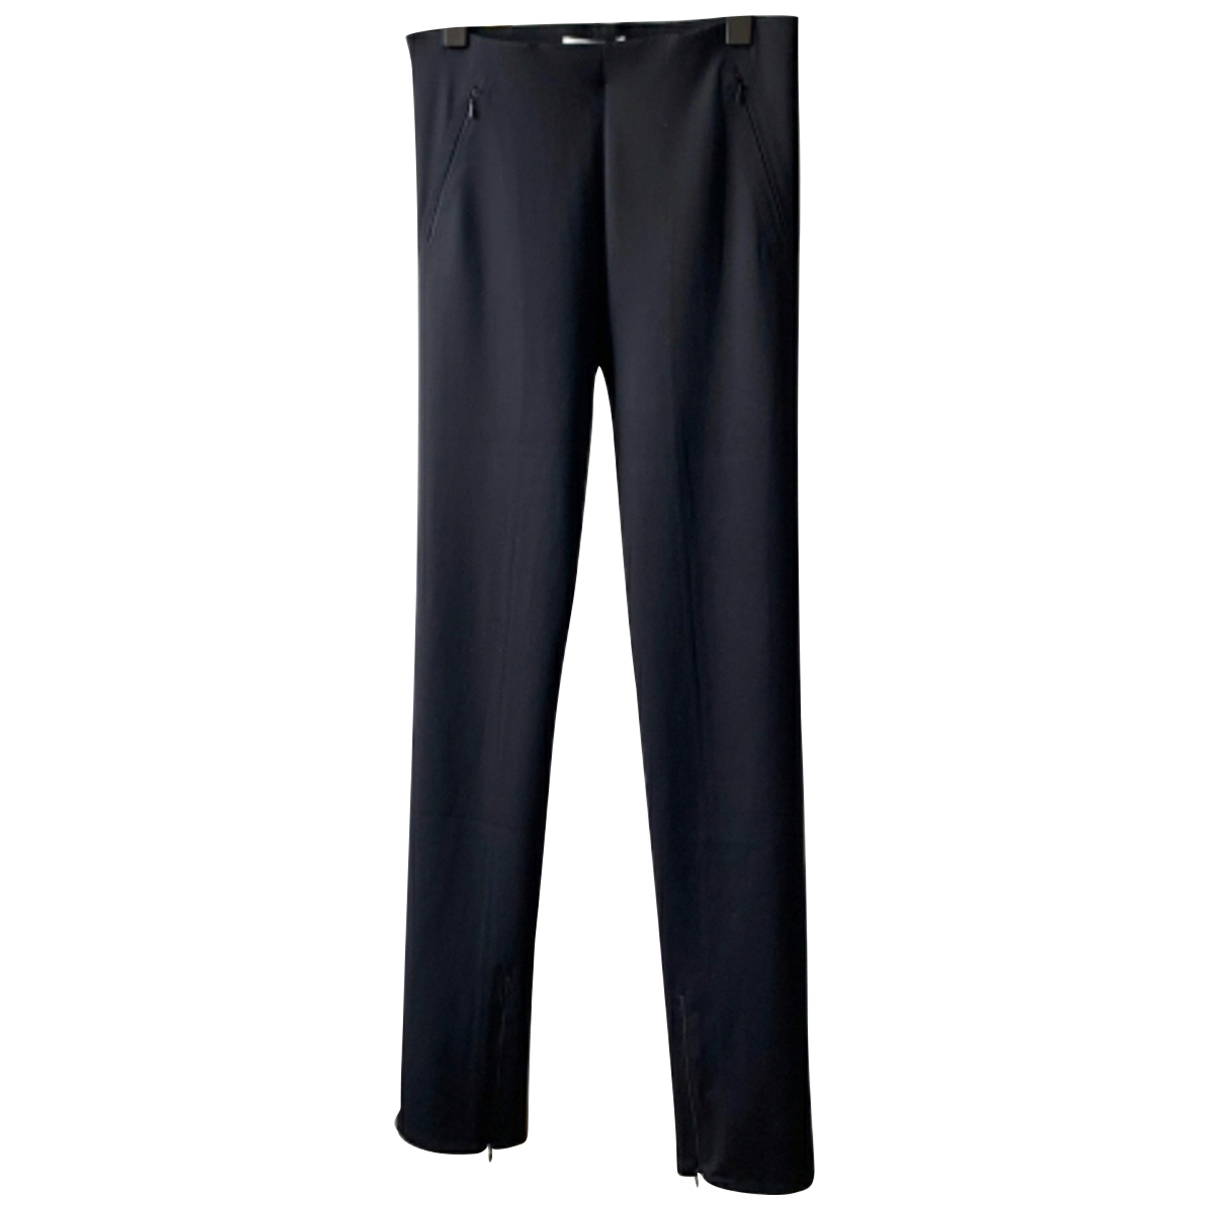 The Row \N Black Trousers for Women M International